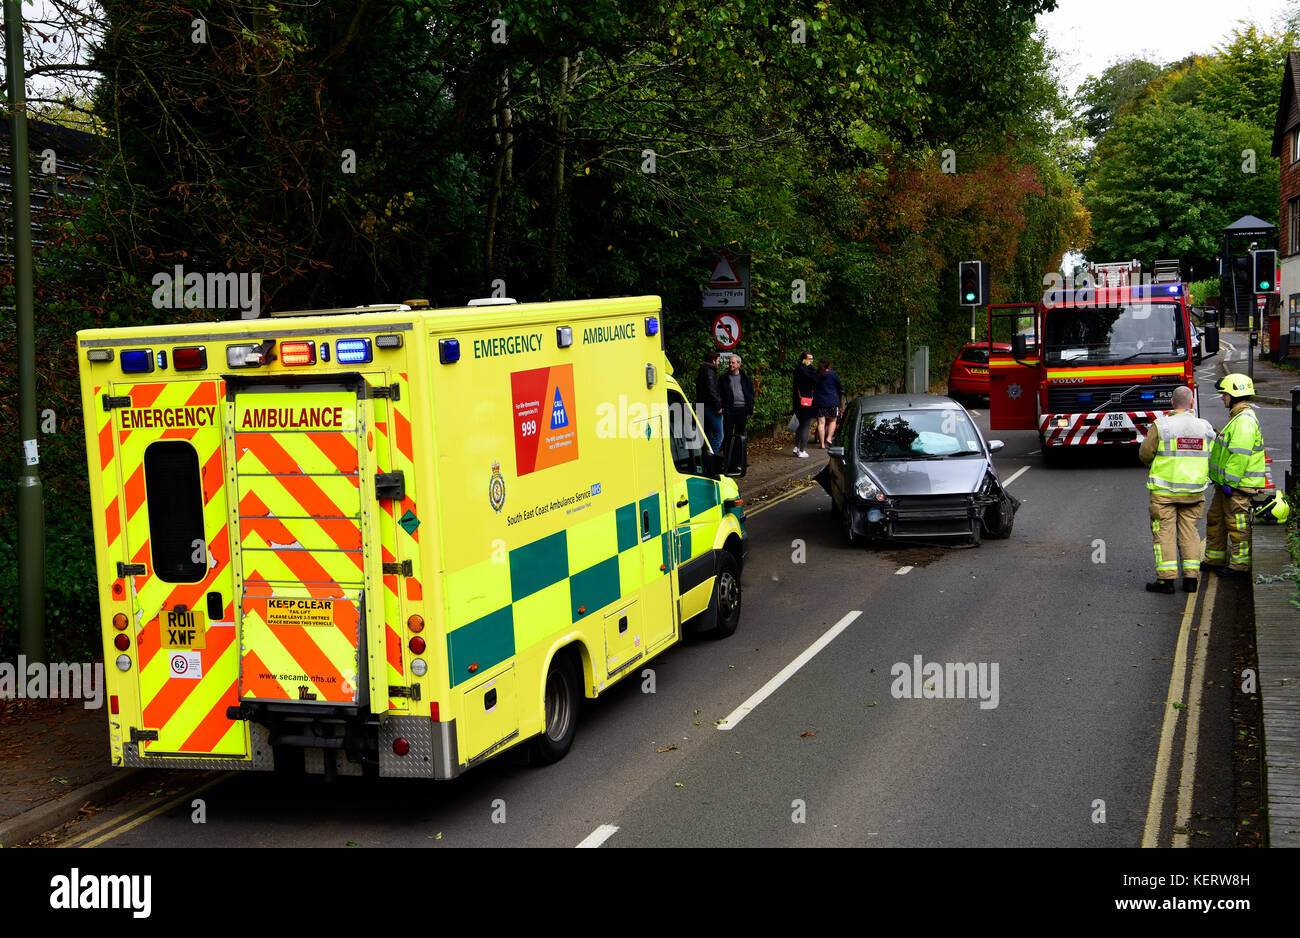 Emergency services (ambulance and fire engine) at the scene of a road traffic accident, Haslemere, Surrey, UK. Saturday - Stock Image